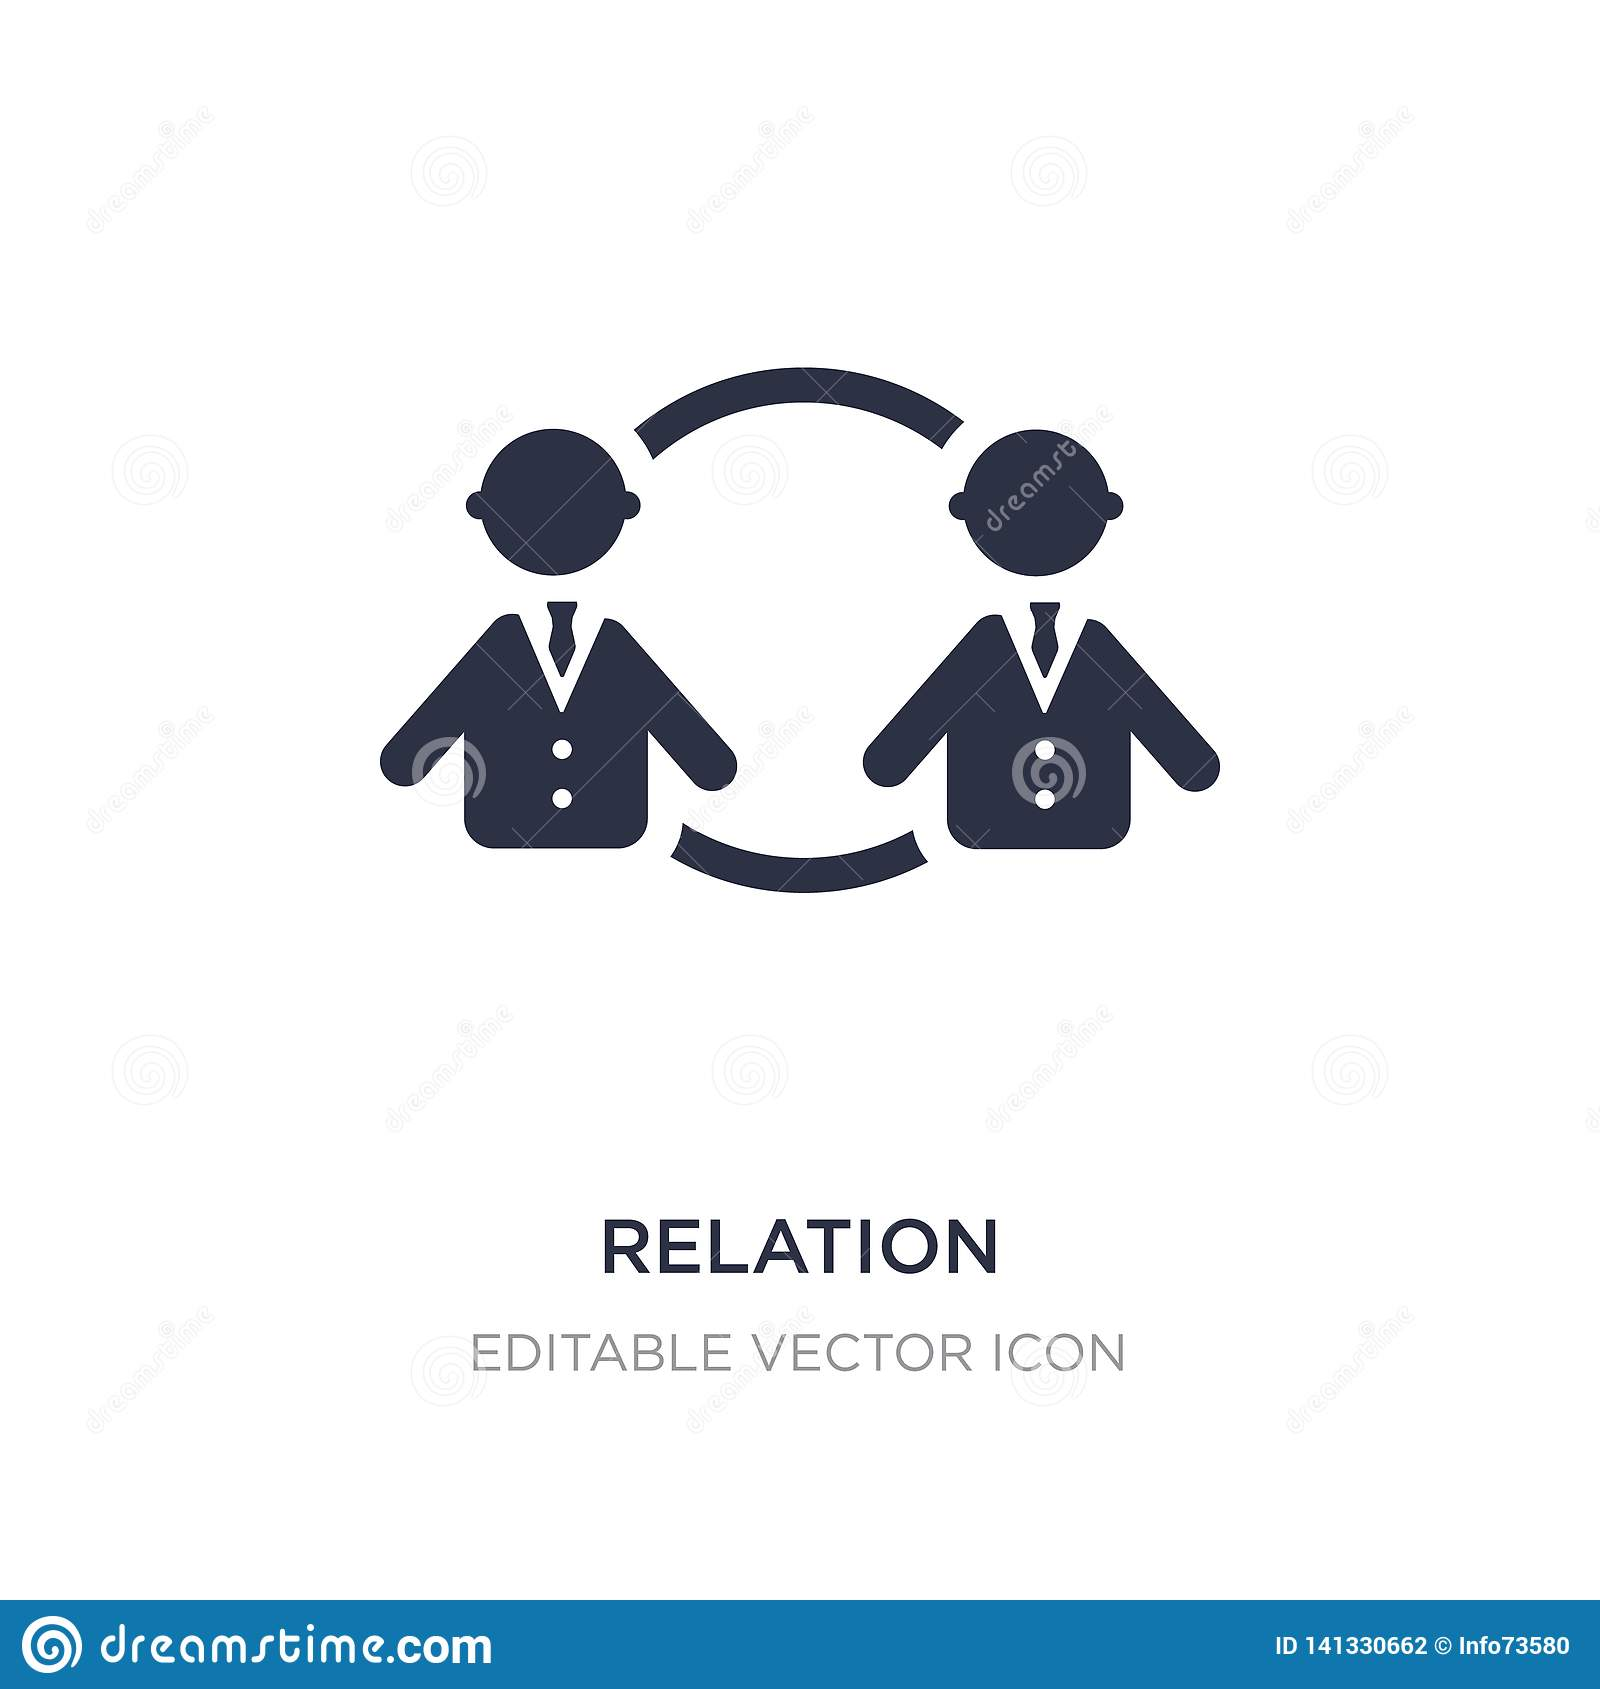 relation icon on white background. Simple element illustration from People concept